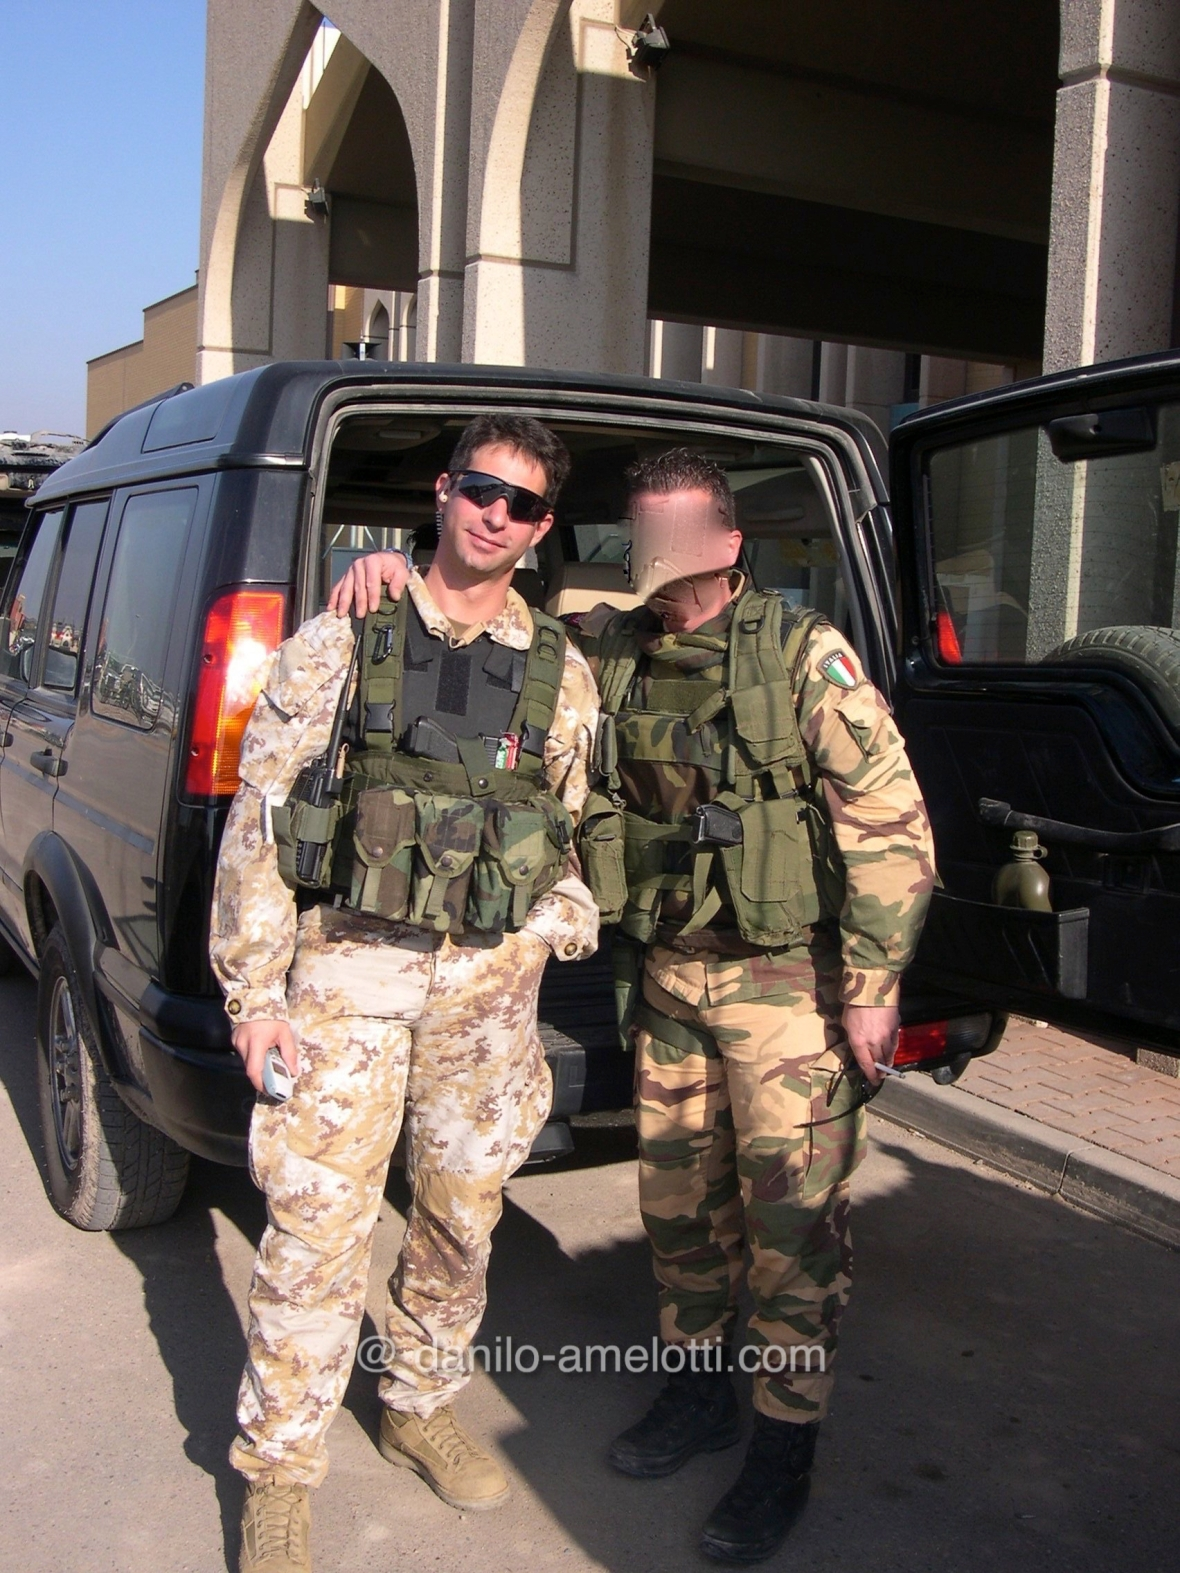 danilo-amelotti.com Iraq close Protection Incursori